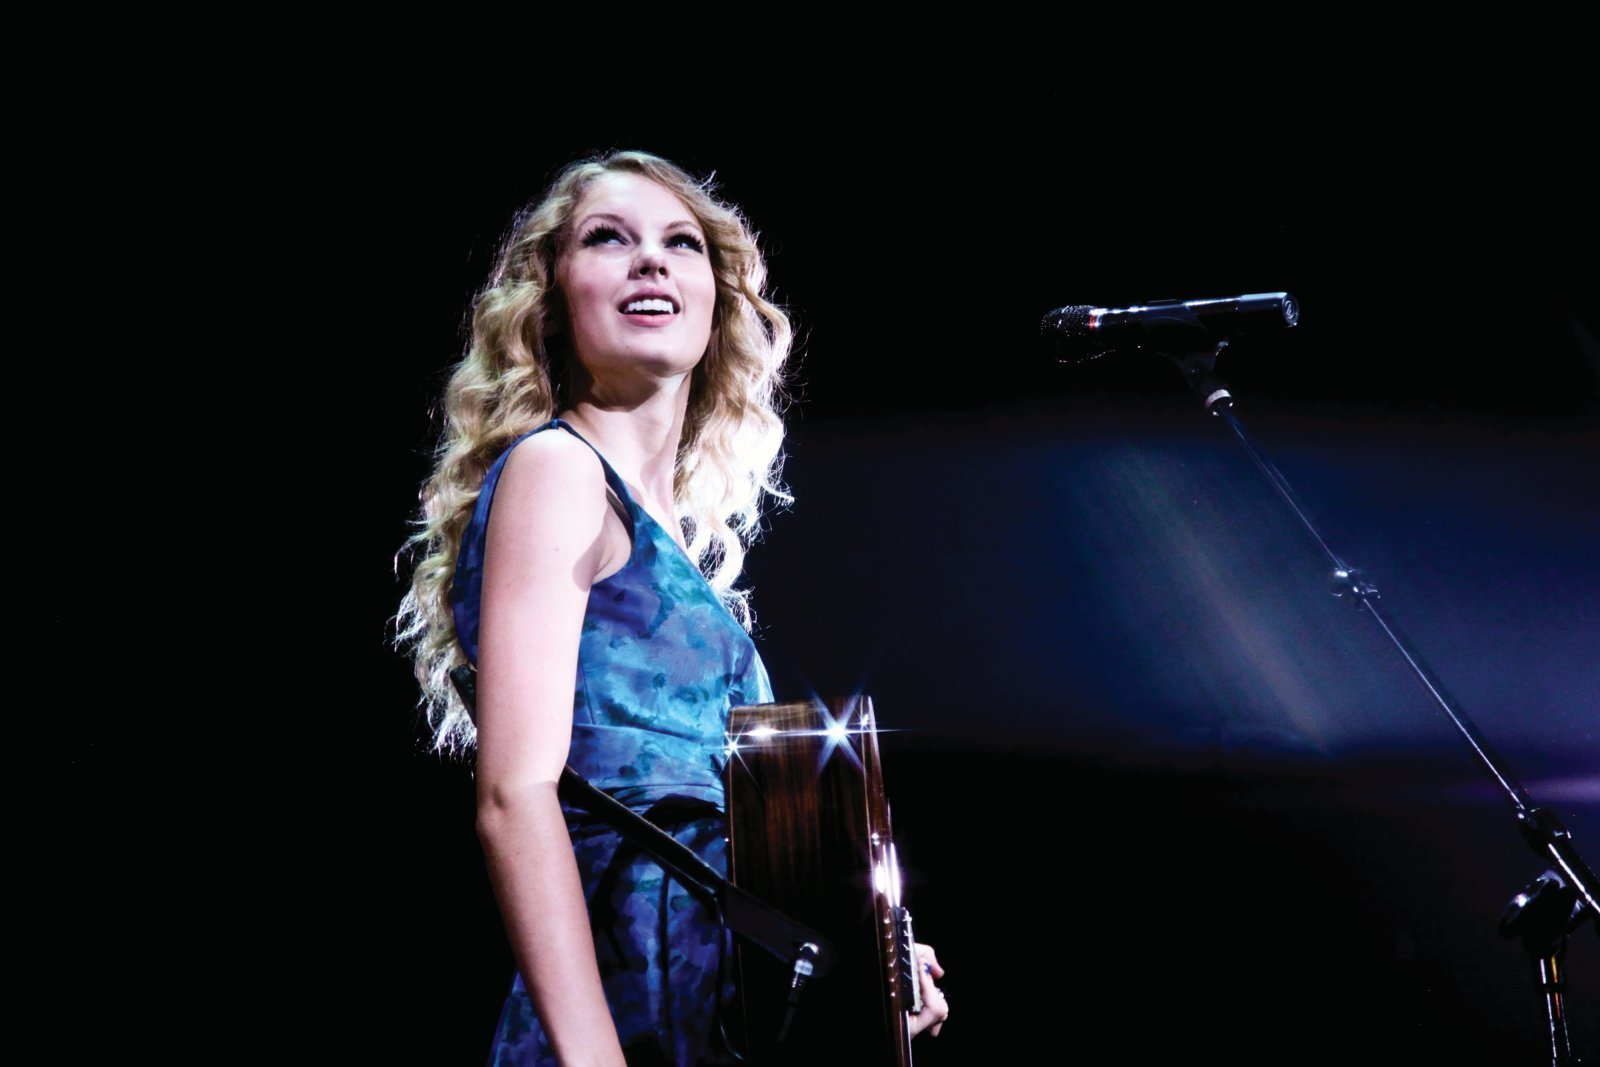 Taylor Swift images Fearless Tour 2009 Promotional Photos HD wallpaper and background photos ...